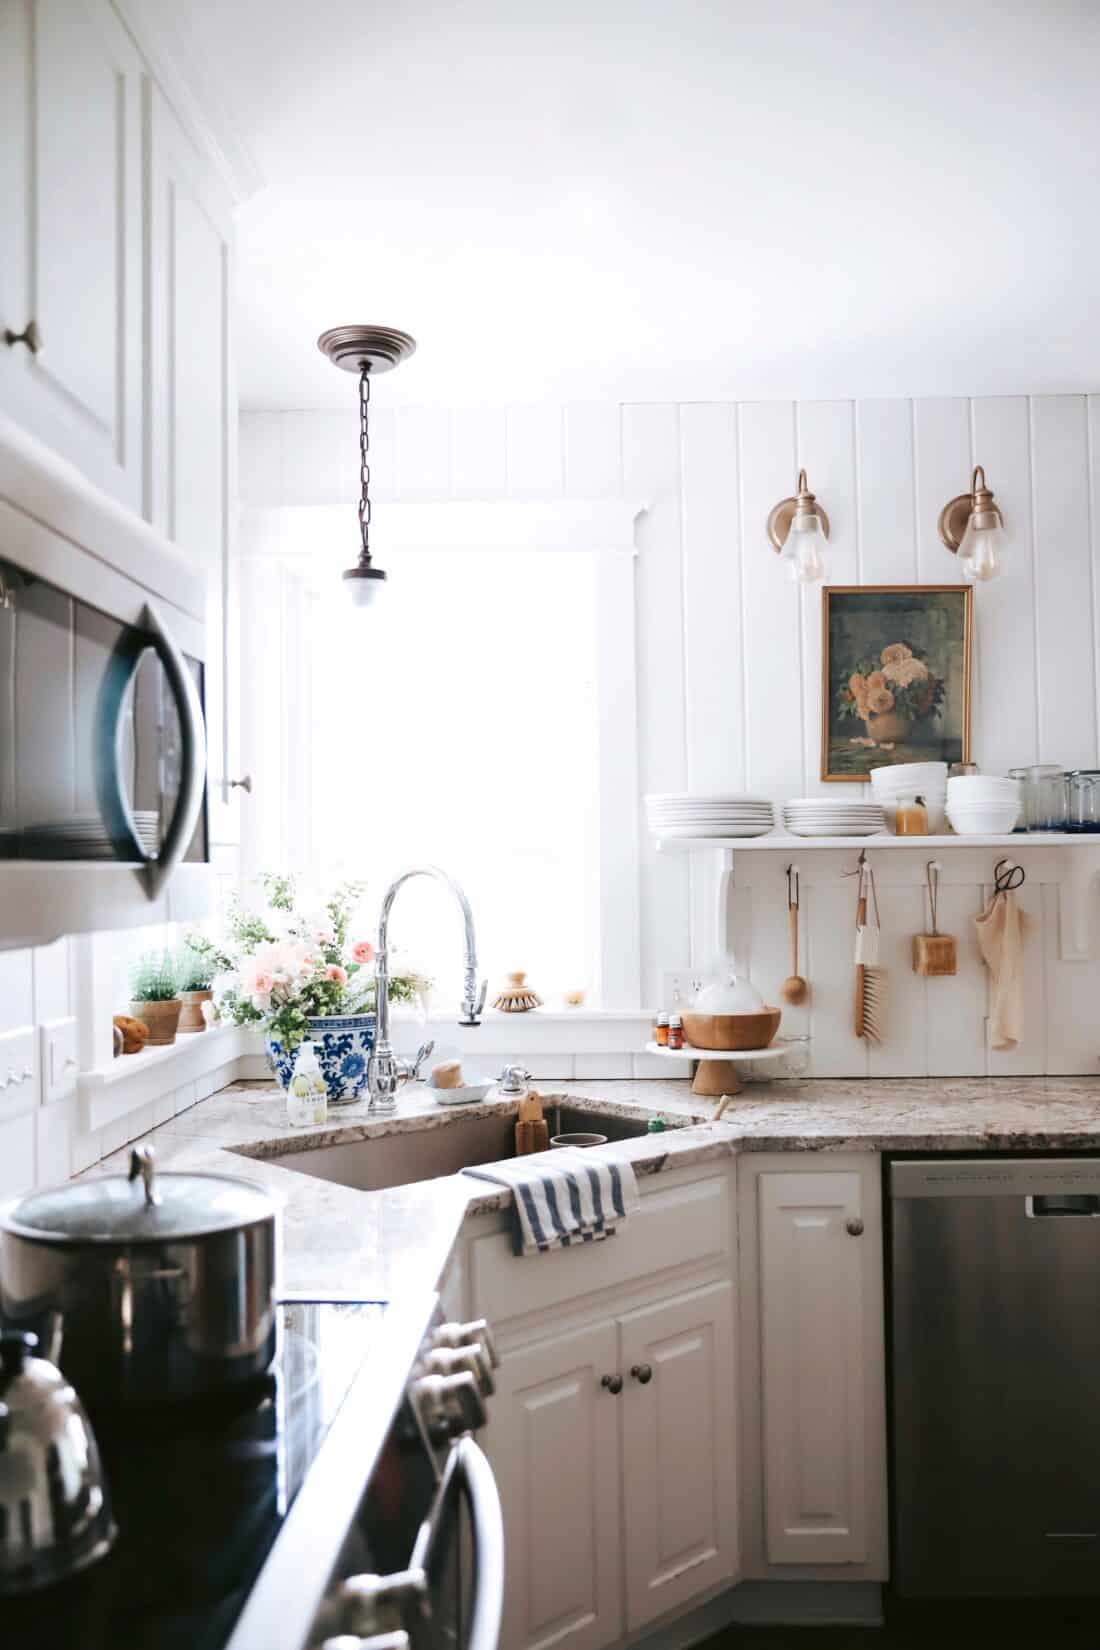 a kitchen with white, vertical shiplap boards and open shelving with a wooden peg rack